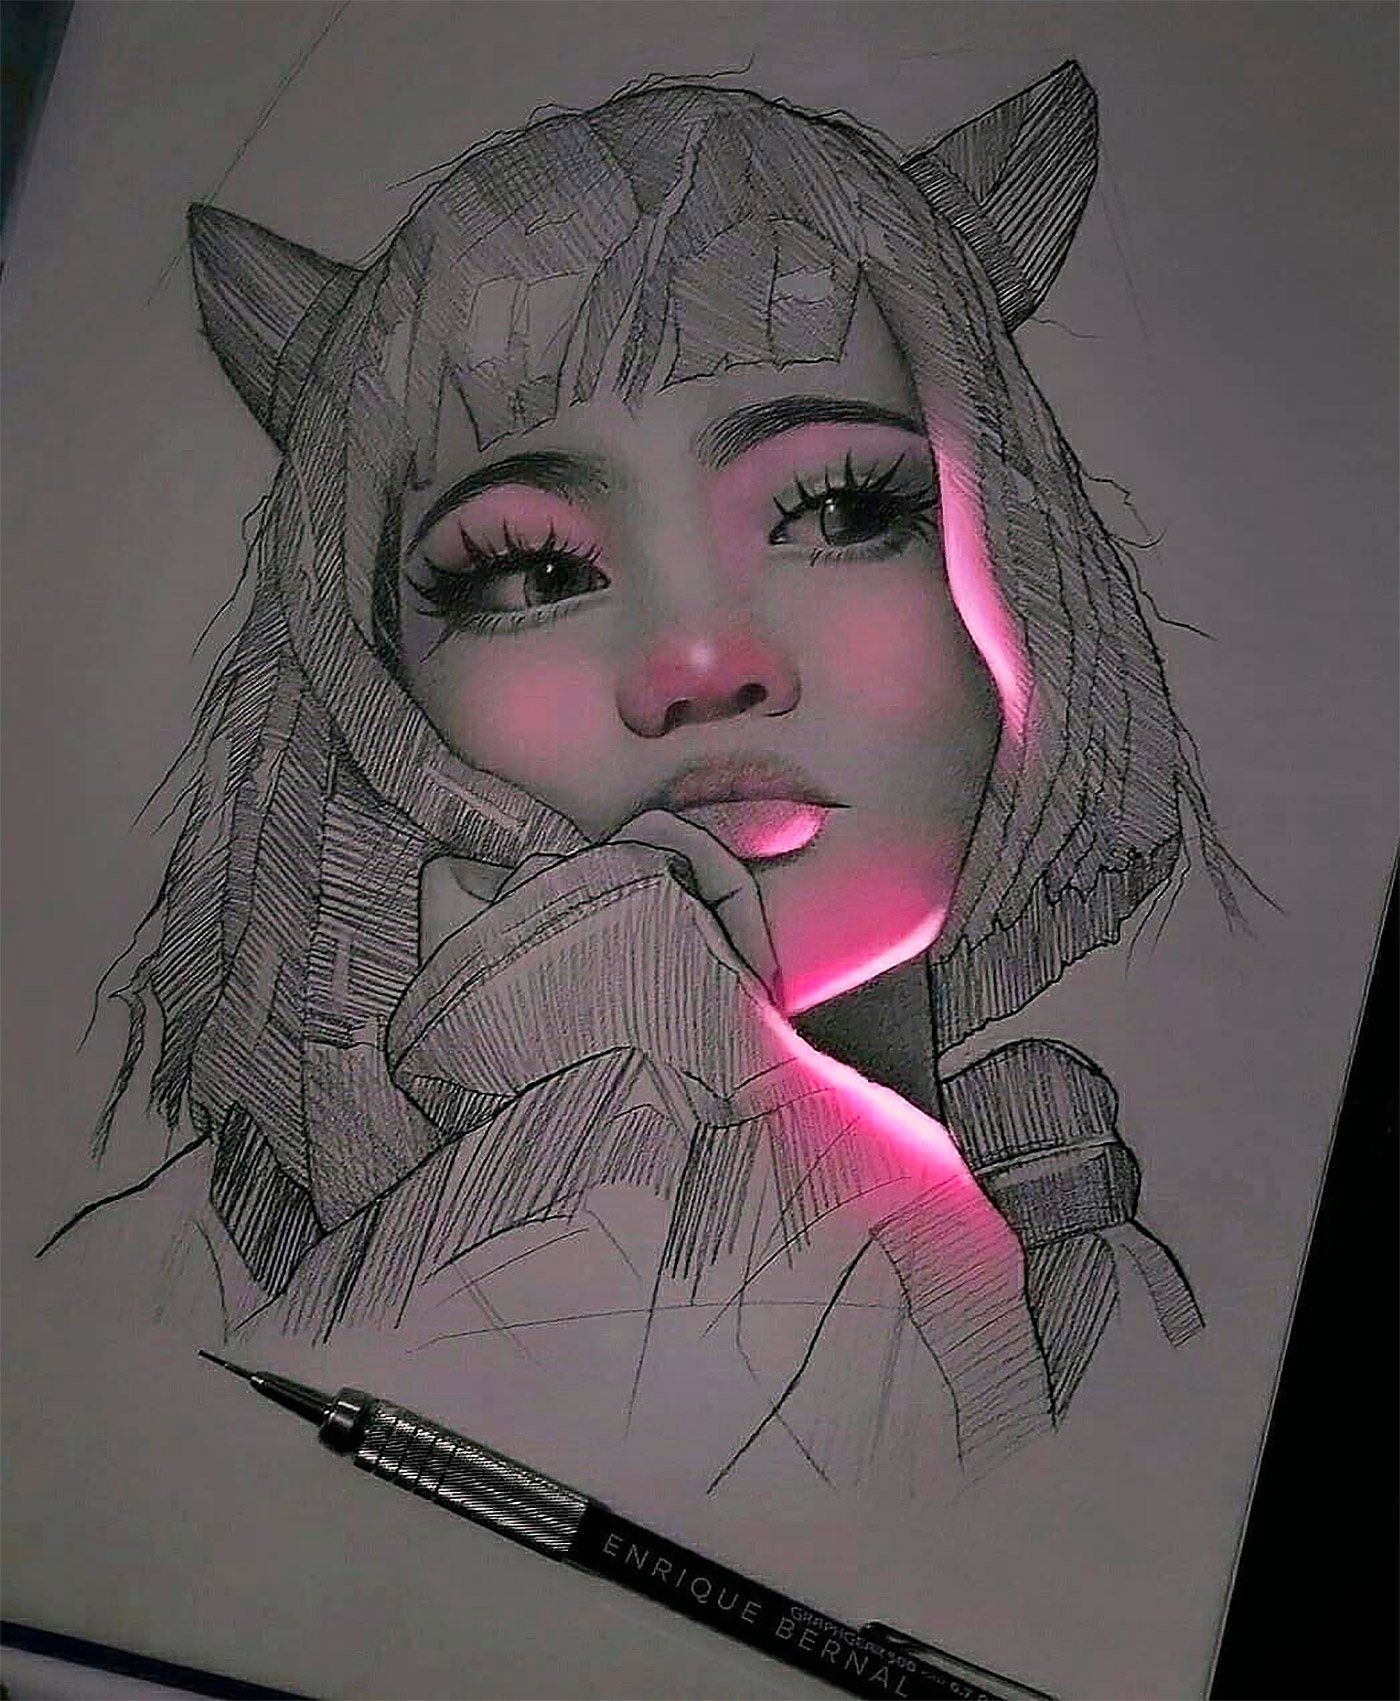 Lit Fluorescent Pencil Drawings By Enrique Bernal Daily Design Inspiration For Creatives Inspiration In 2020 Realistic Drawings Beautiful Pencil Drawings Drawings